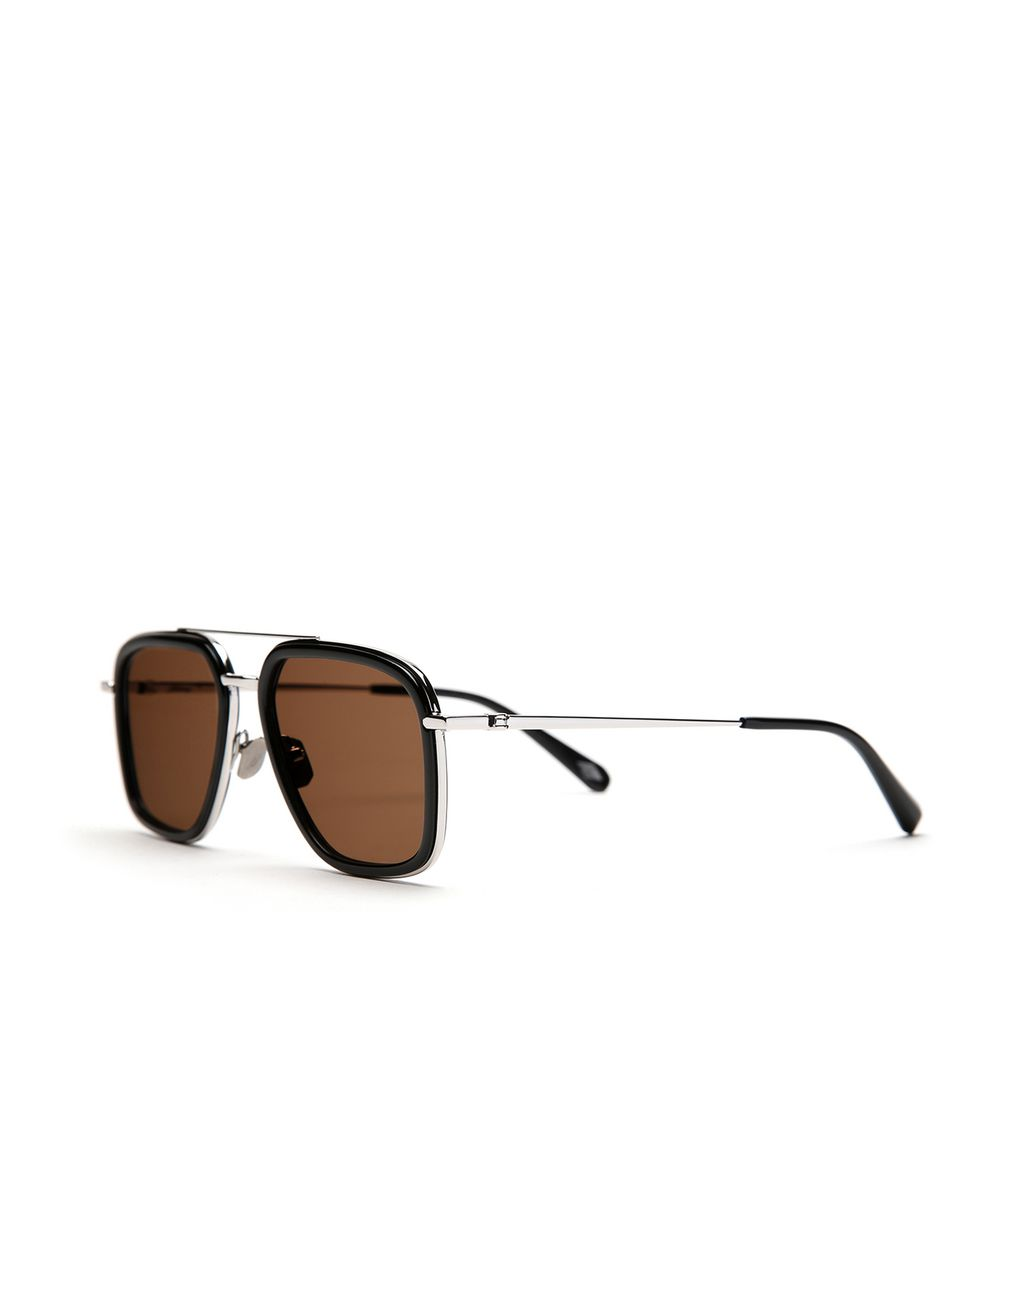 BRIONI Black Geometric Shape Sunglasses with Brown Lenses  Sunglasses Man r